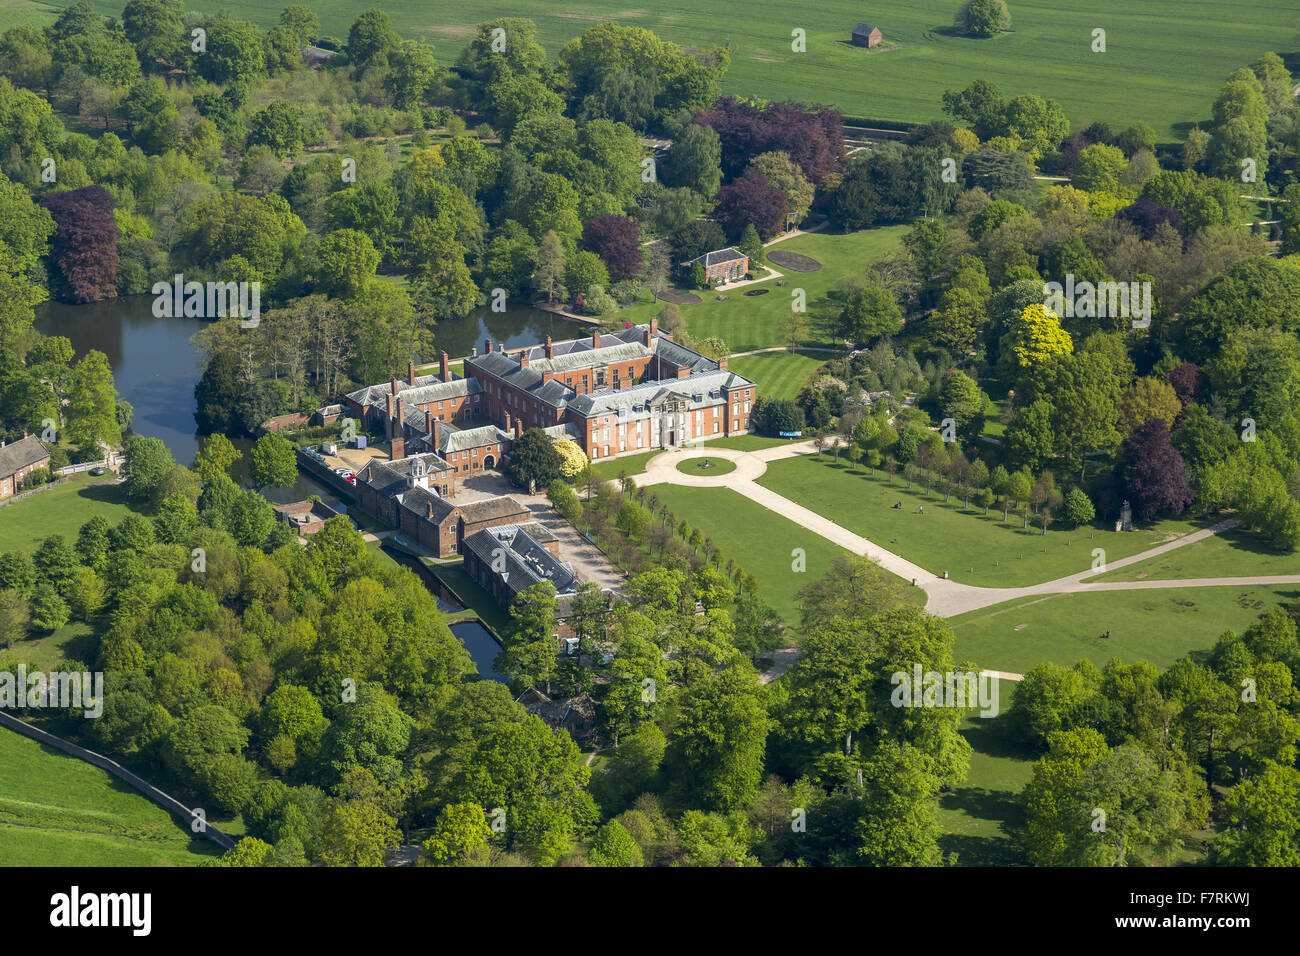 An aerial view of Dunham Massey is the Stamford Military Hospital, Cheshire. - Stock Image